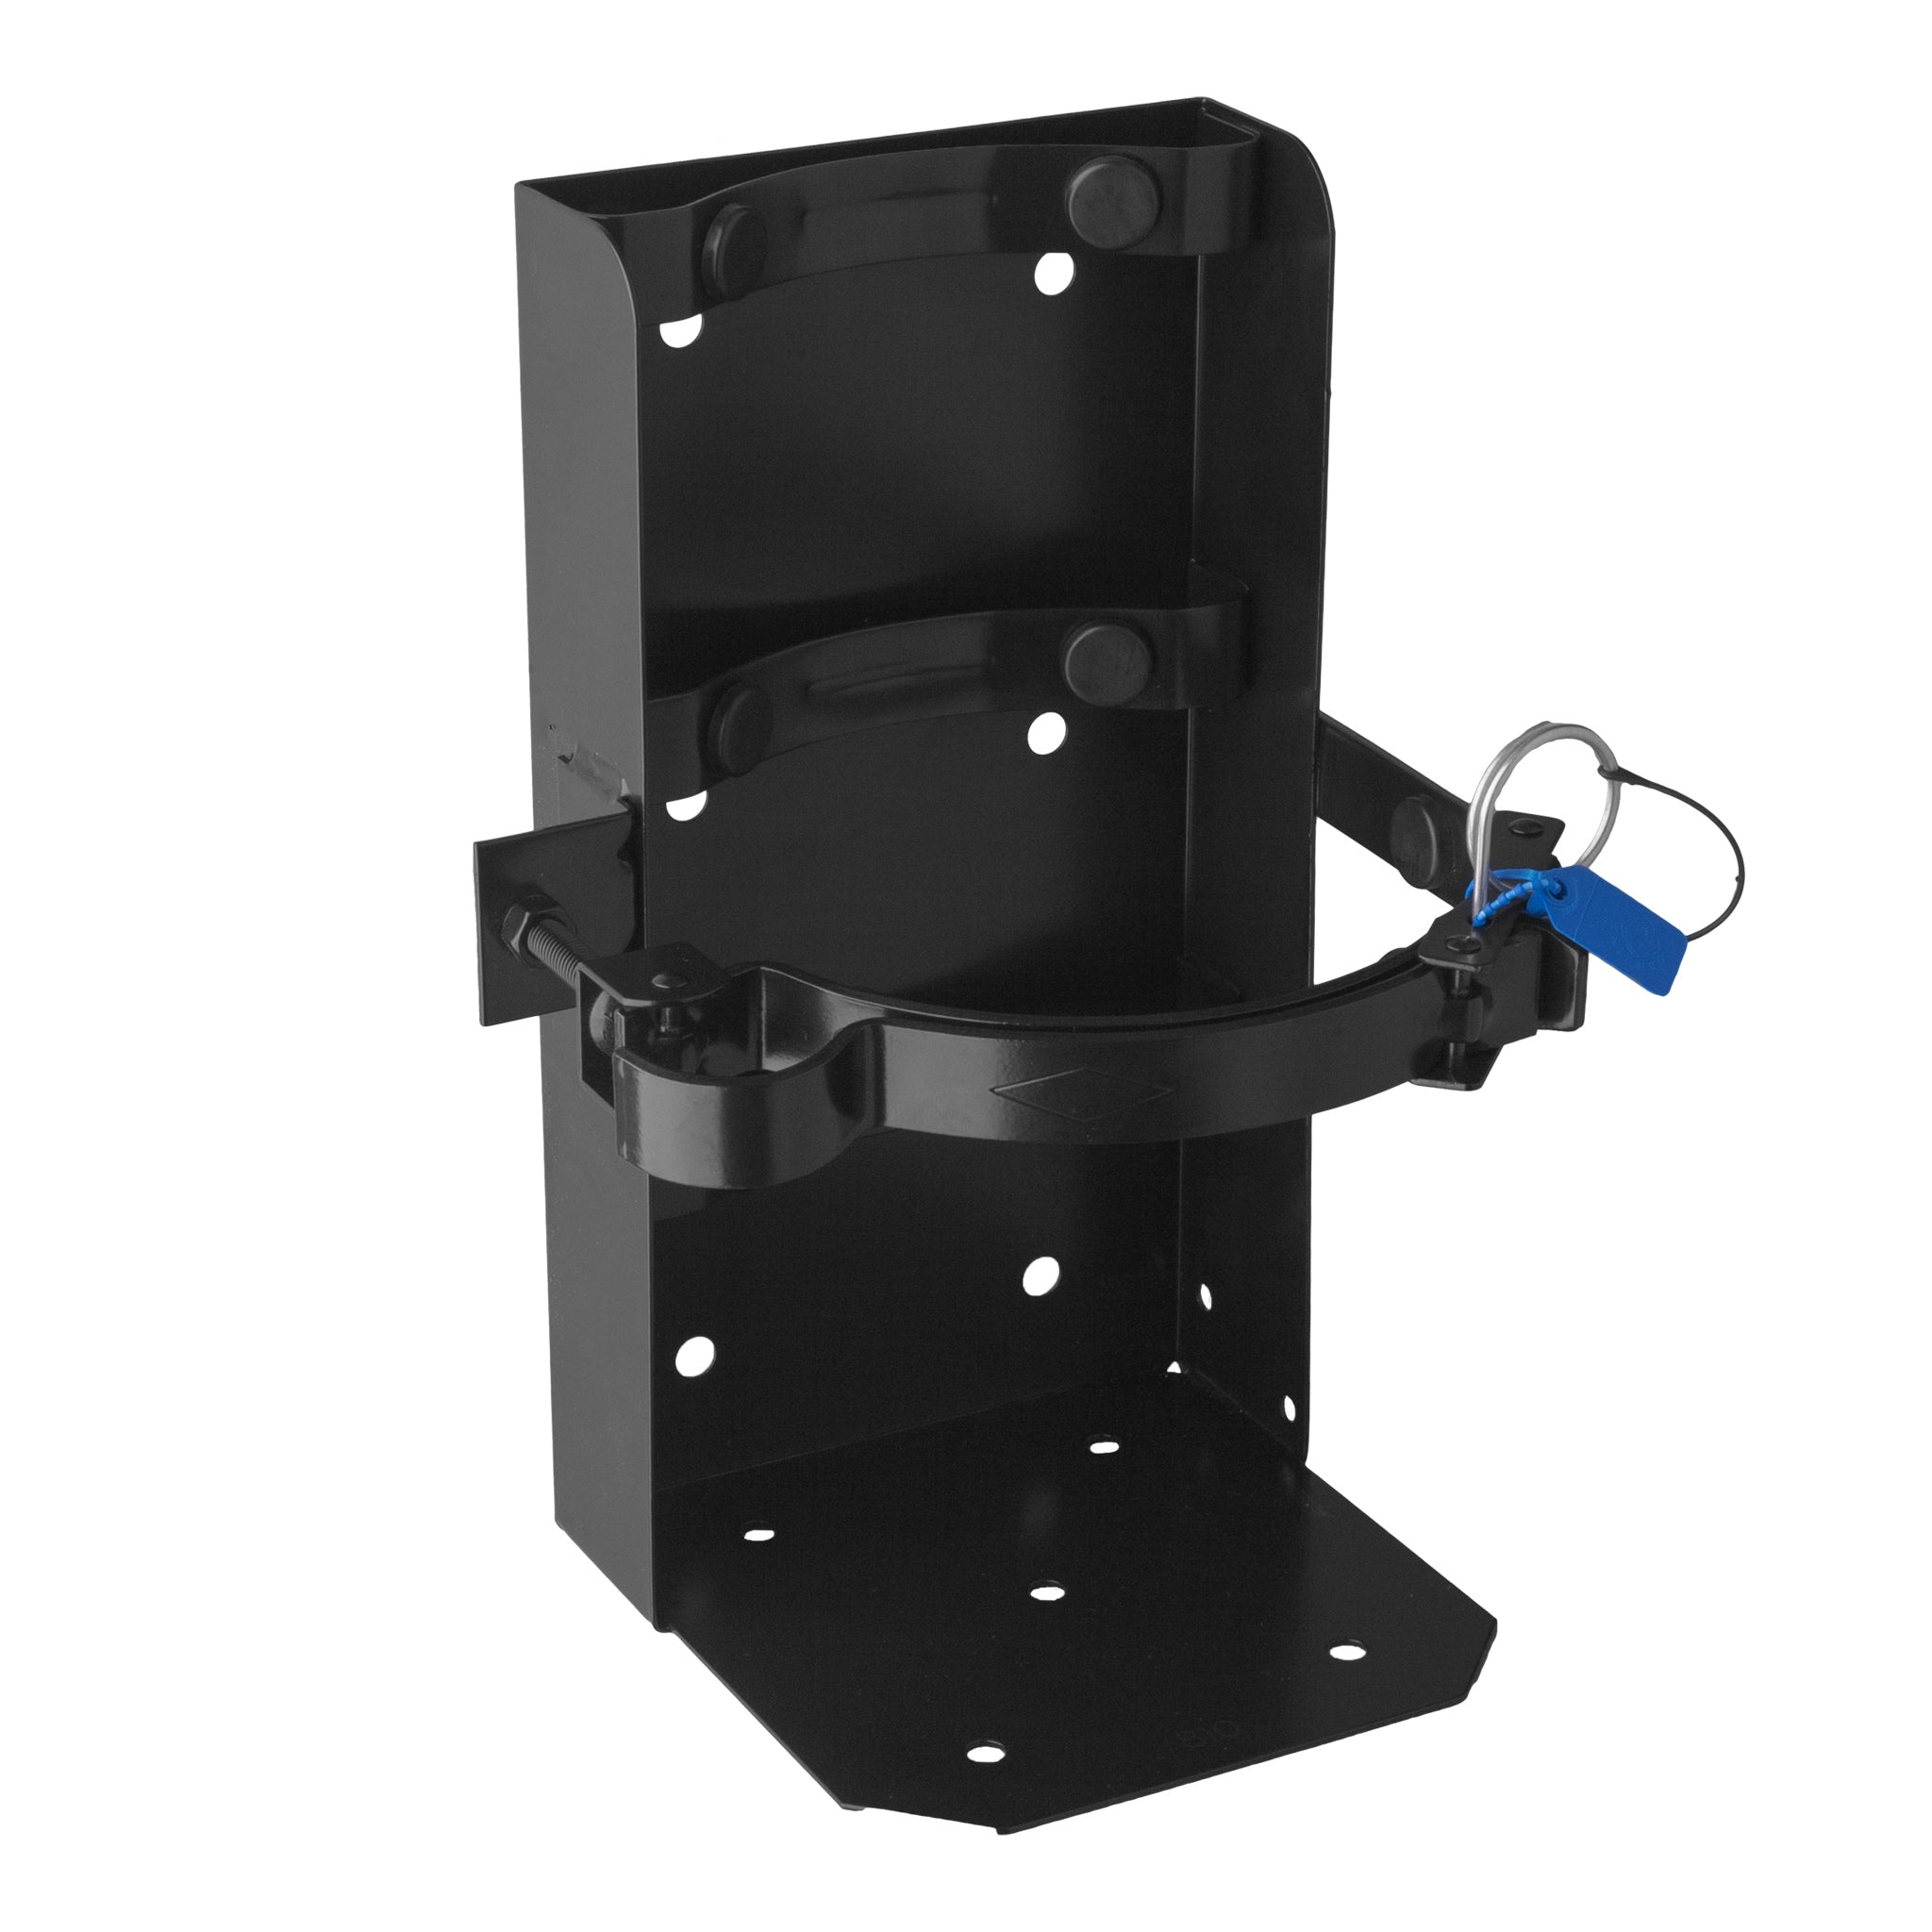 MODEL 810 - Box-type Fire Extinguisher Bracket